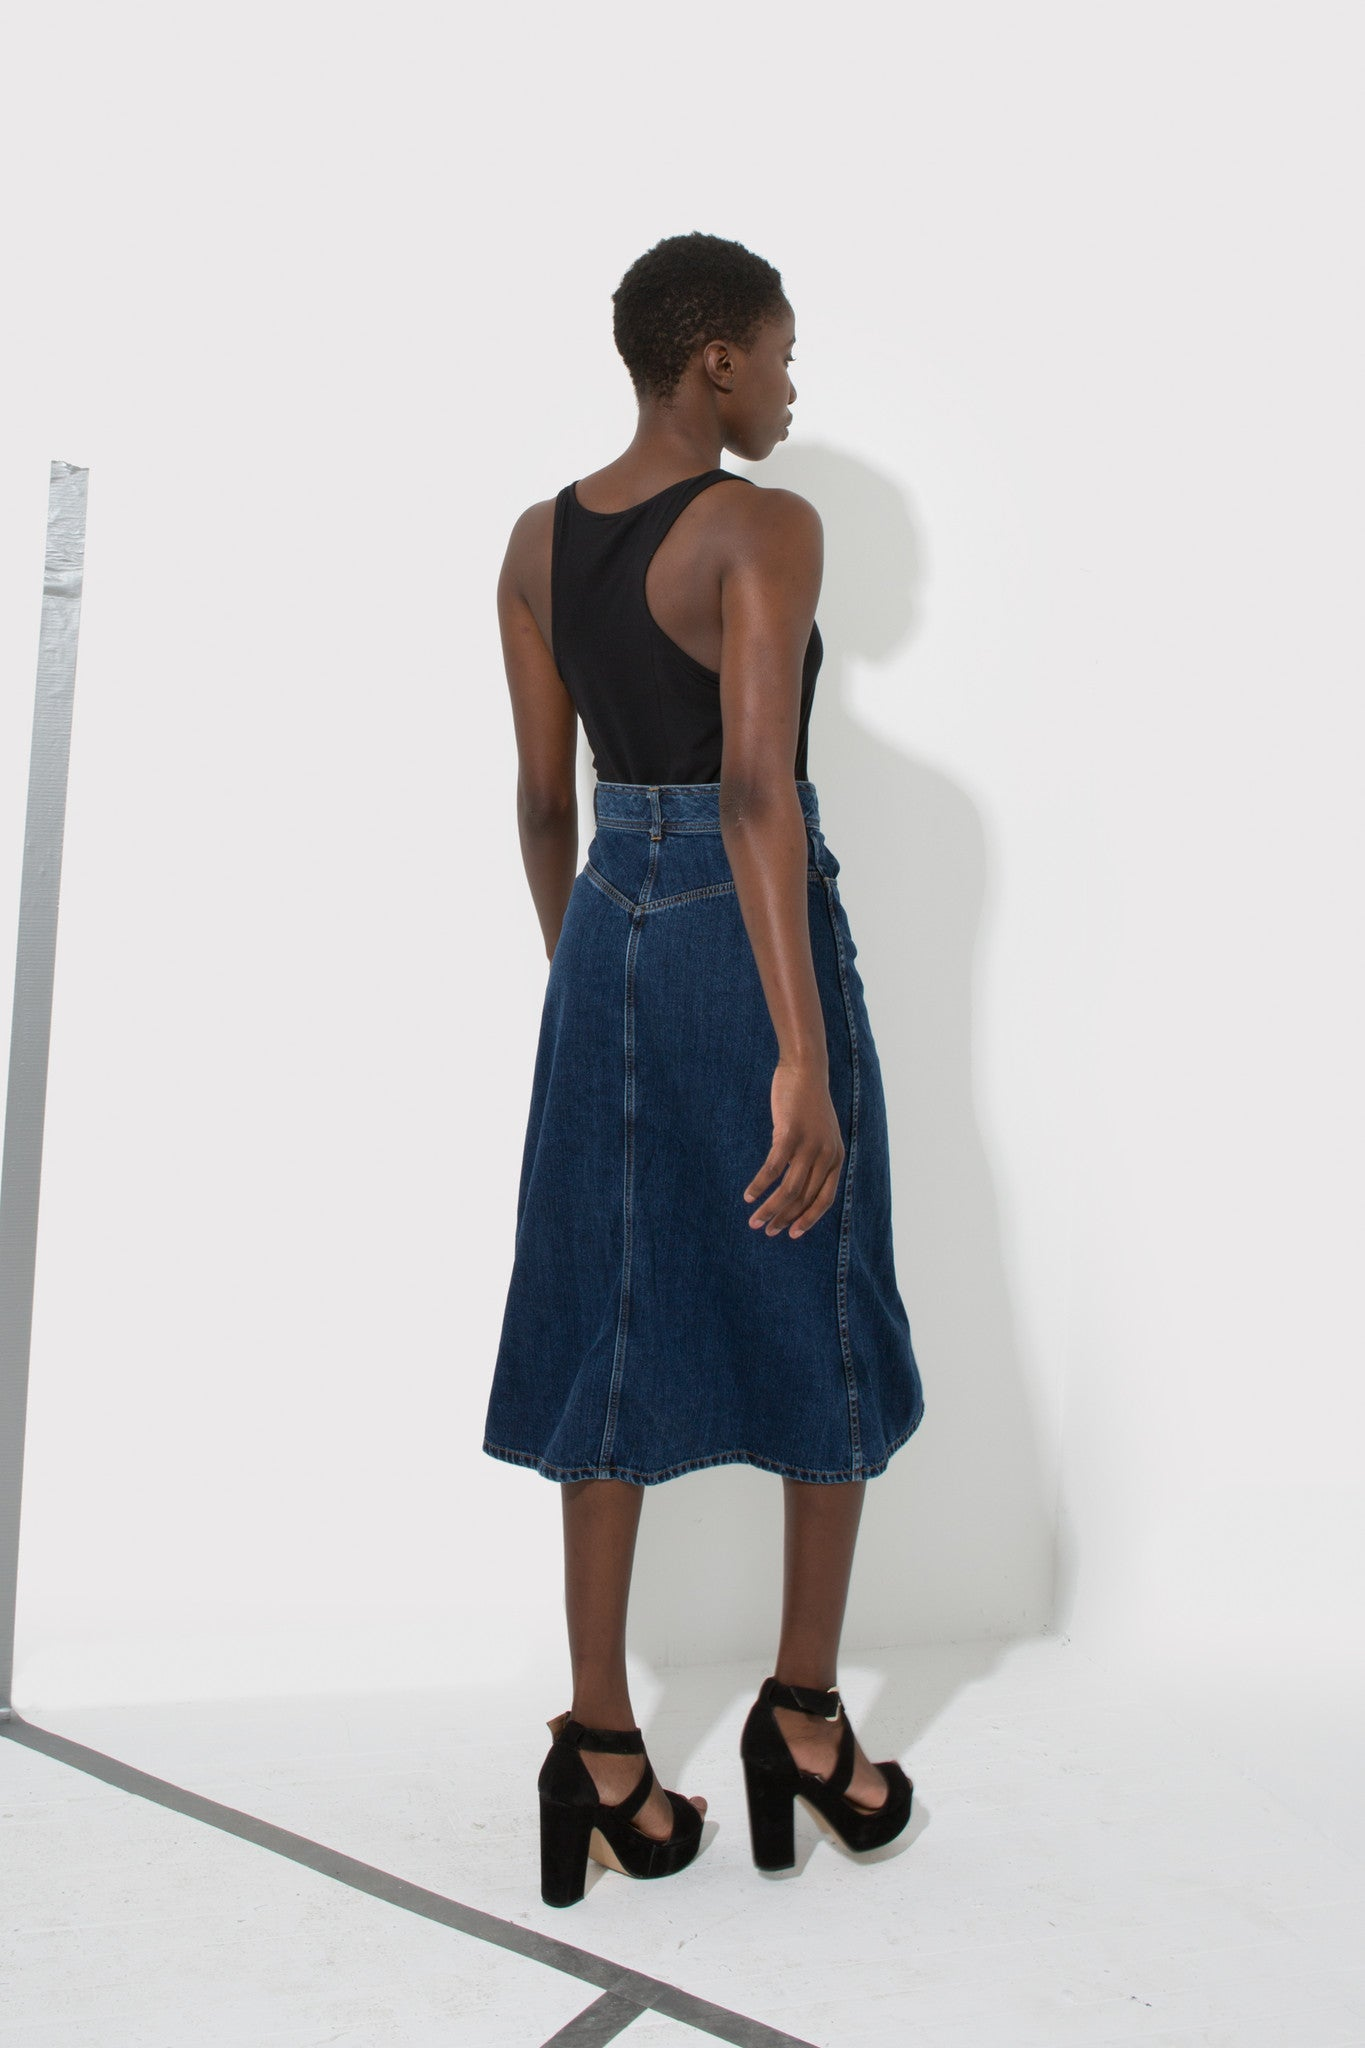 Candice front button skirt is a long, a-line, denim skirt designed by Enda